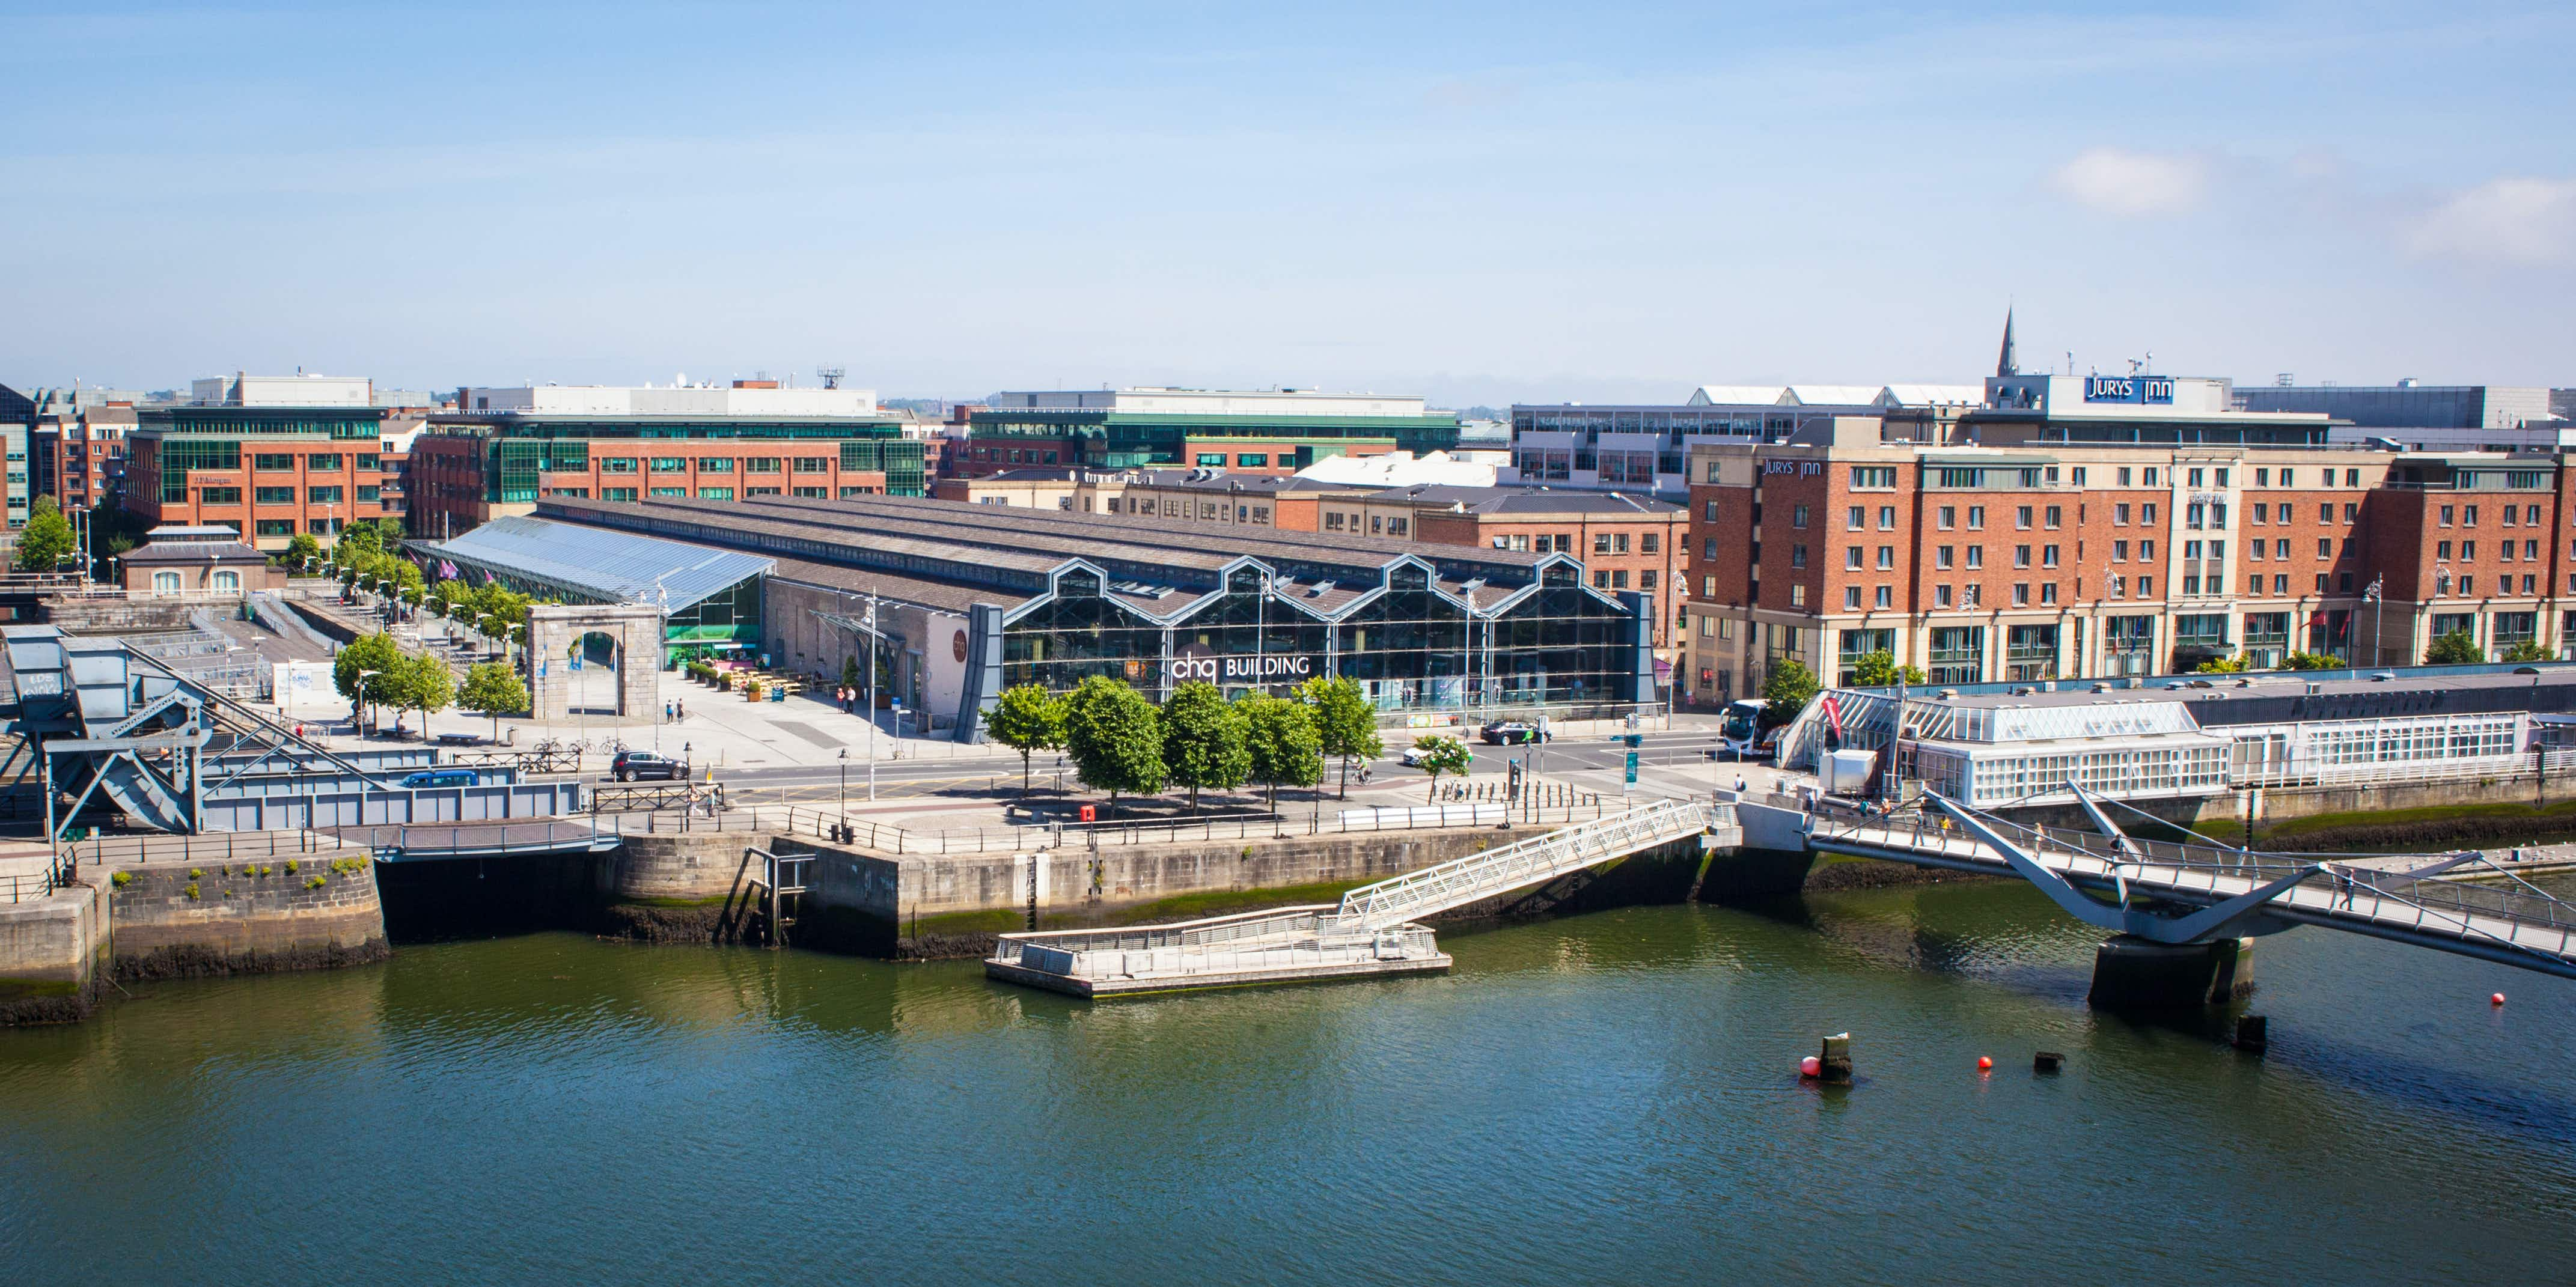 The Irish Emigration Museum in Dublin has welcomed 80,000 visitors in its first year